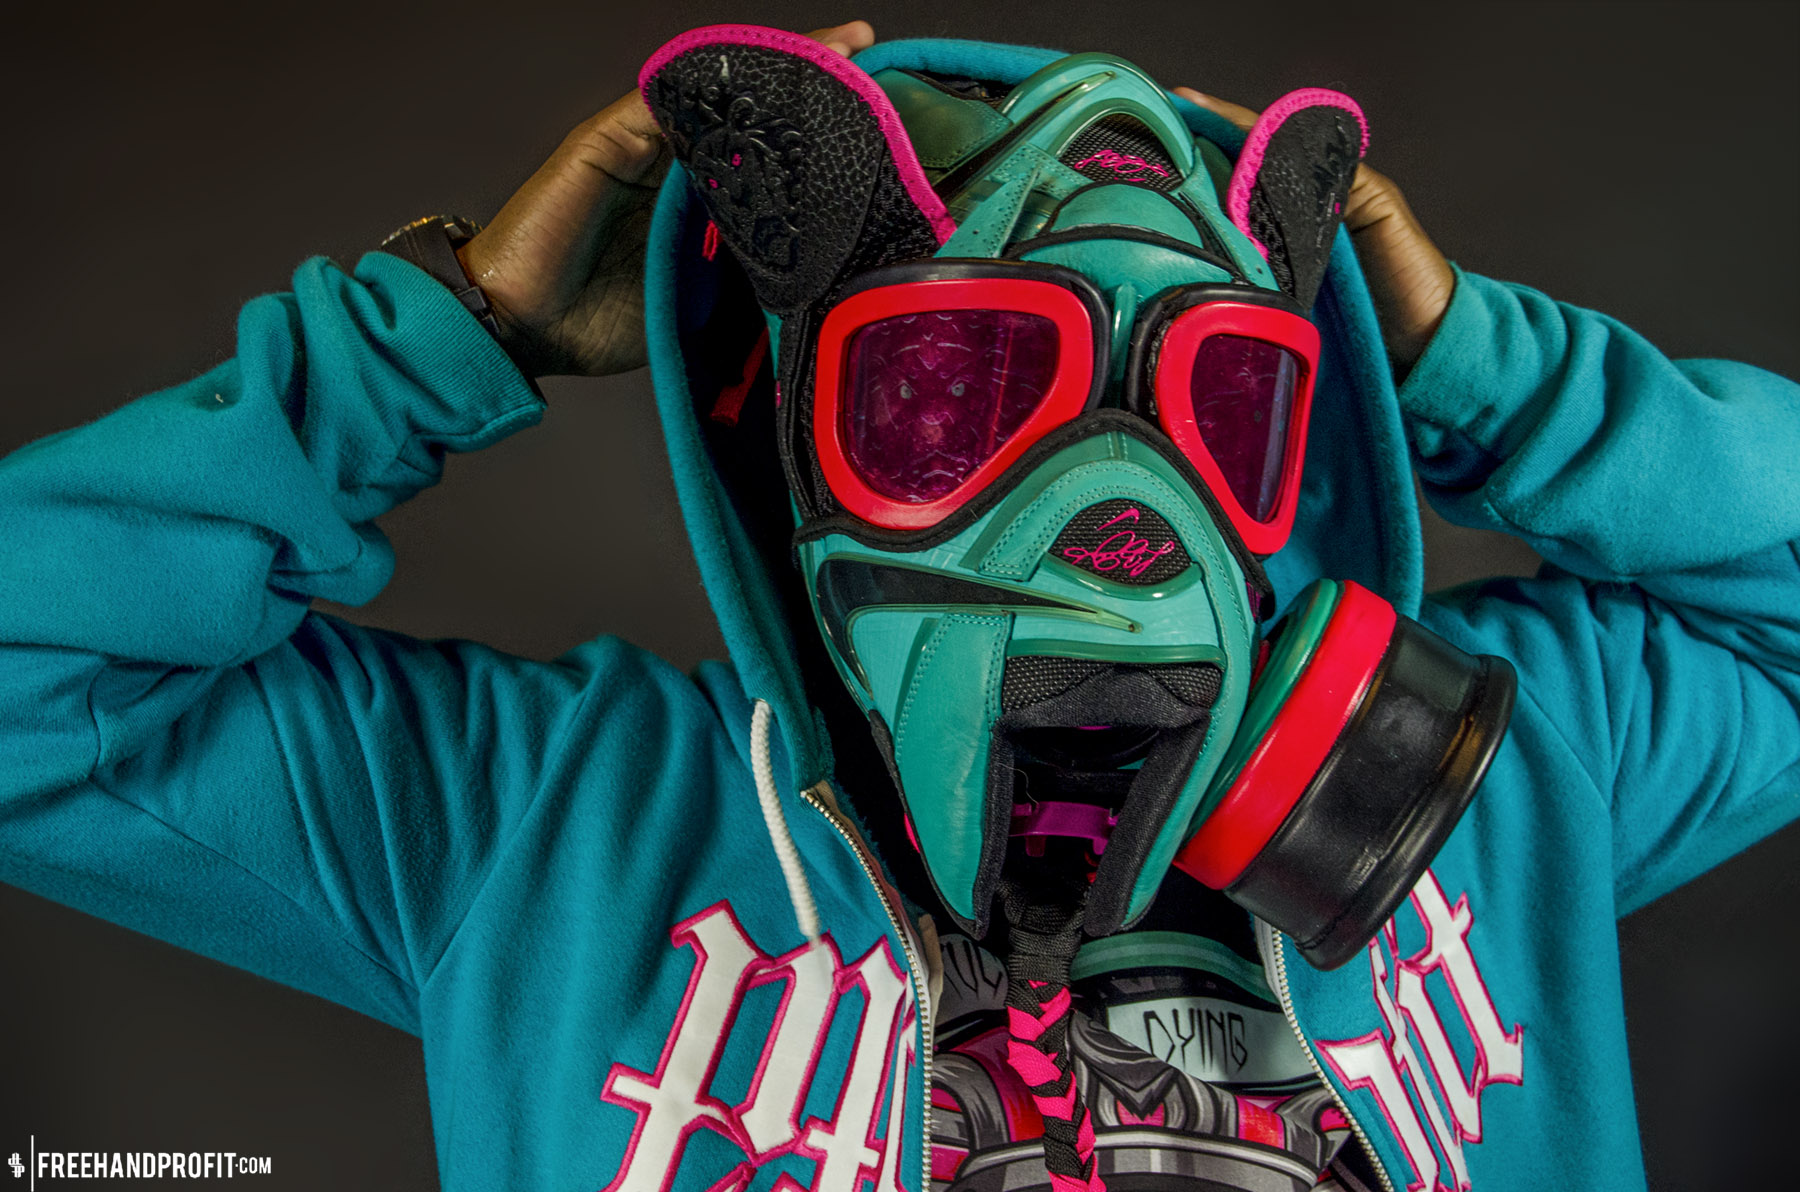 lebron 8 south beach. the 28th sneaker mask created by freehand profit. made from 1 pair of nike lebron lebron 8 south beach